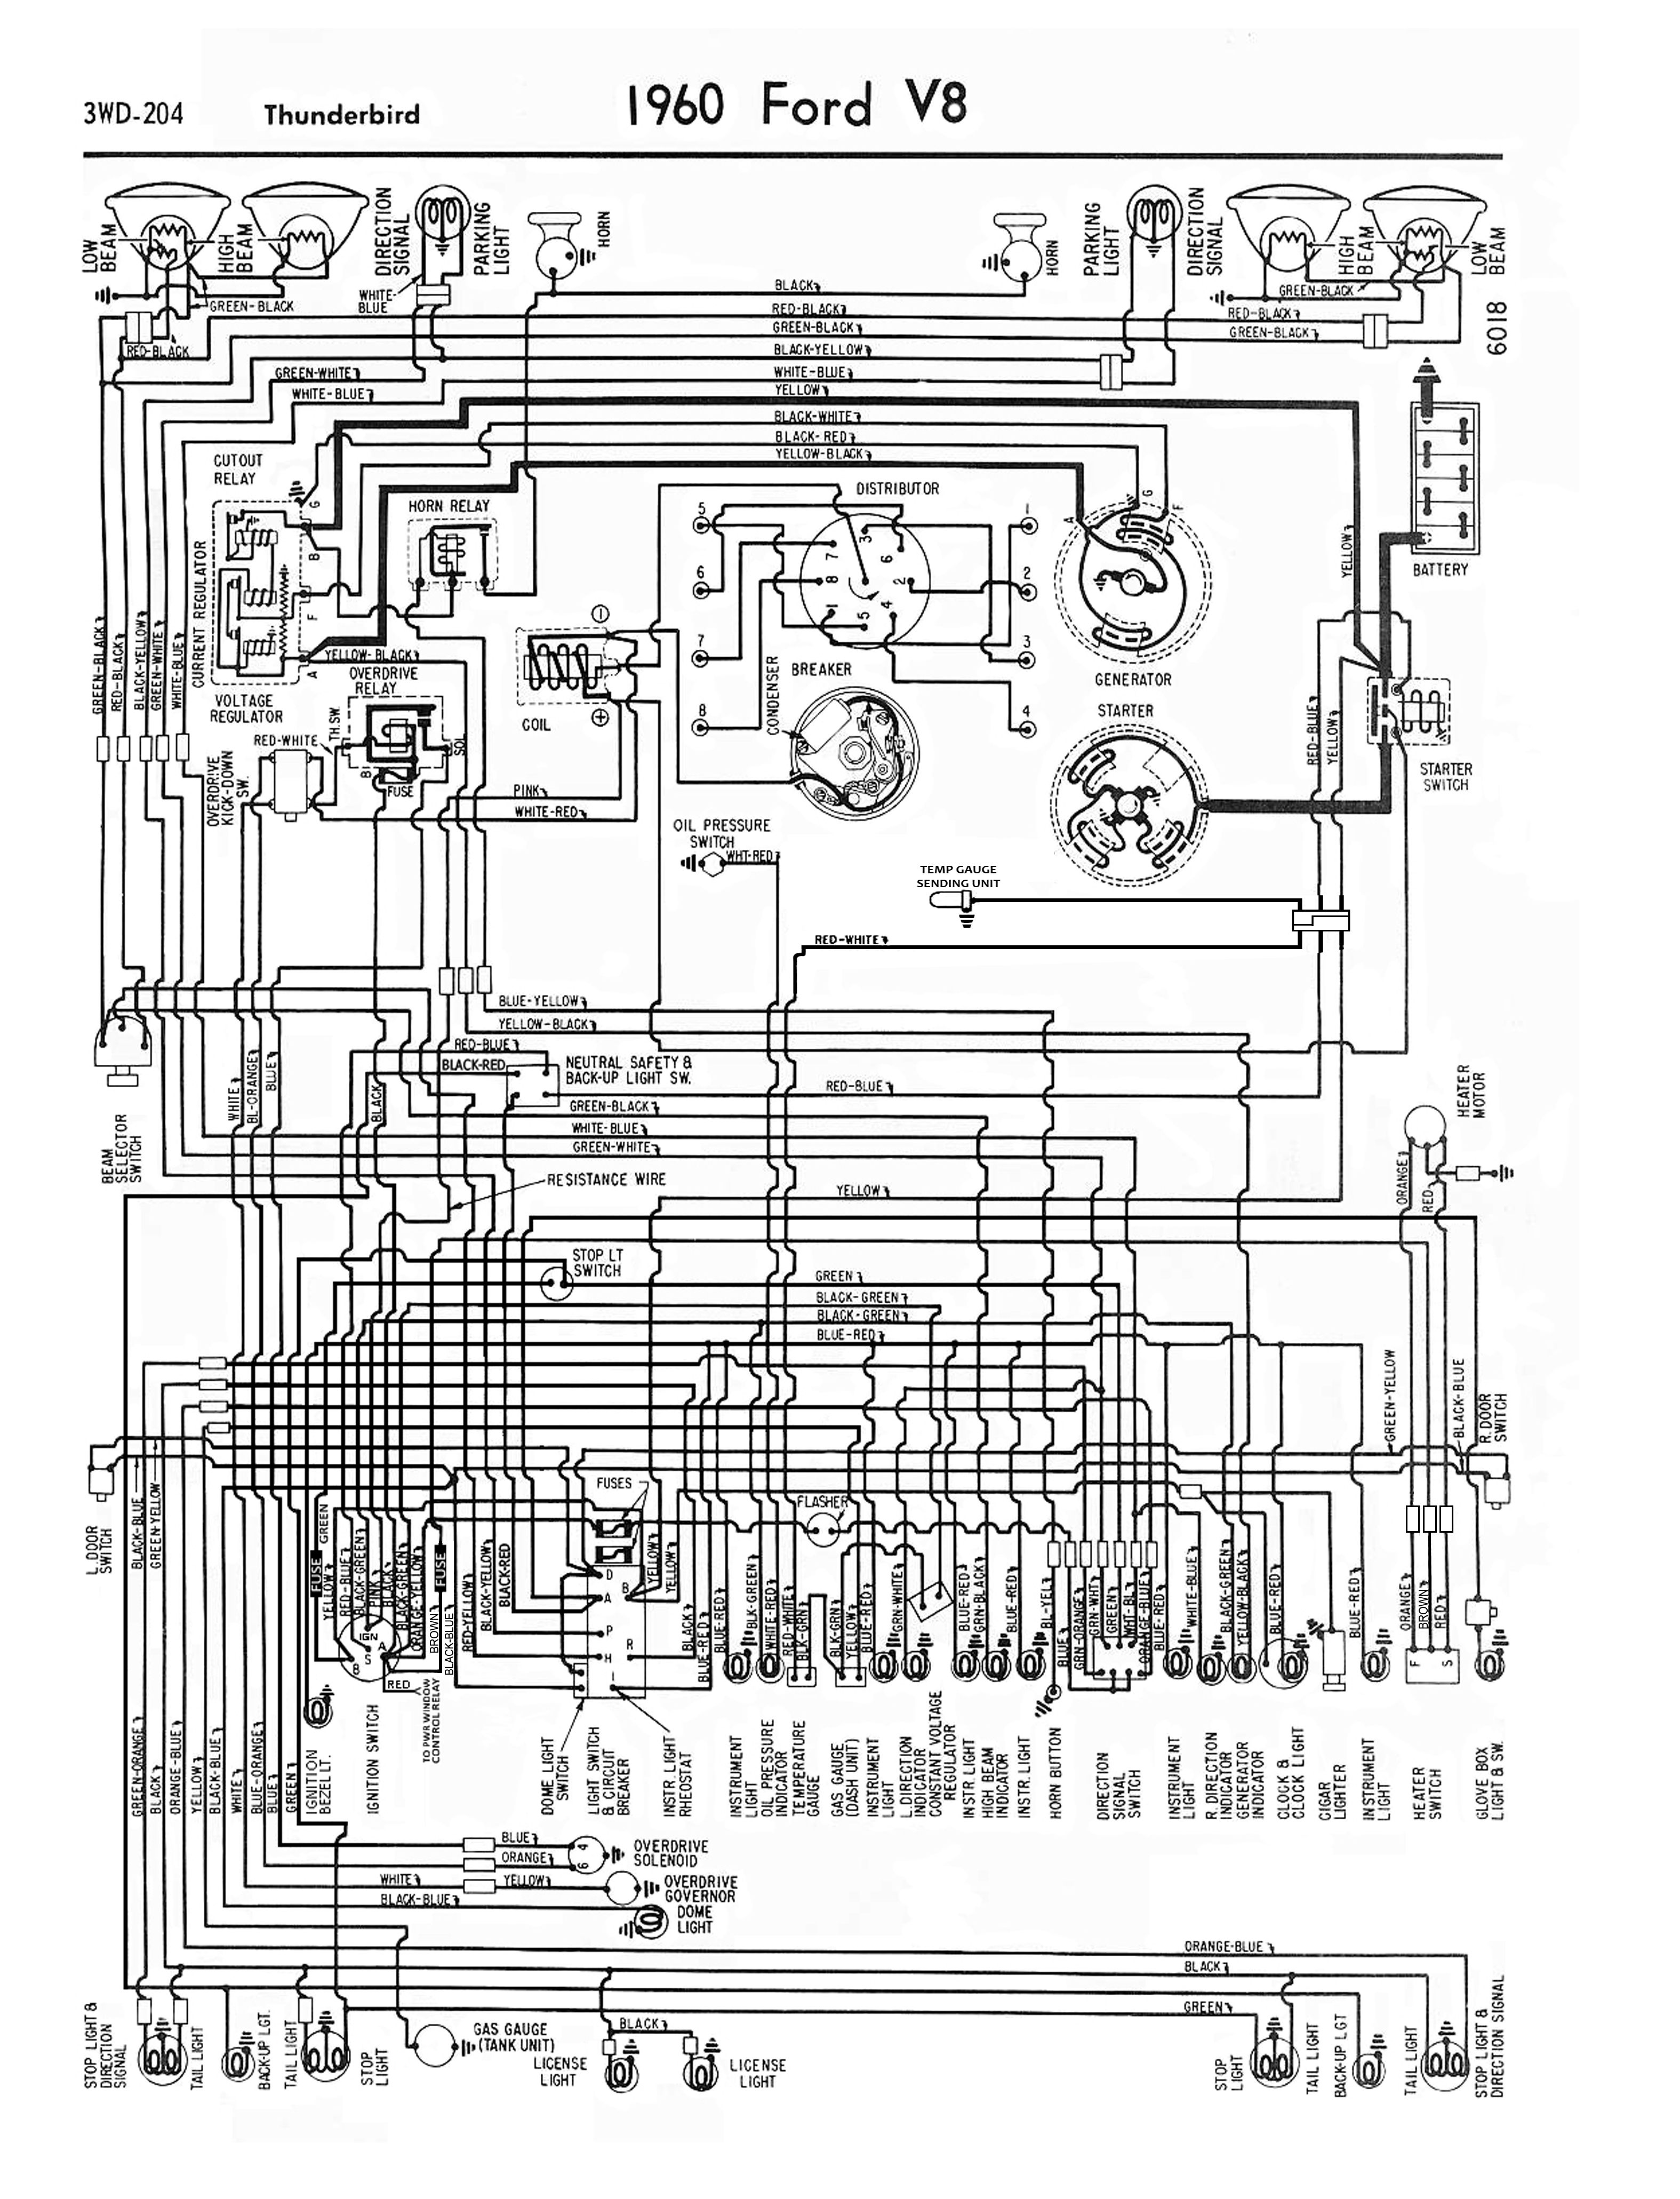 1958 68 Ford Electrical Schematics